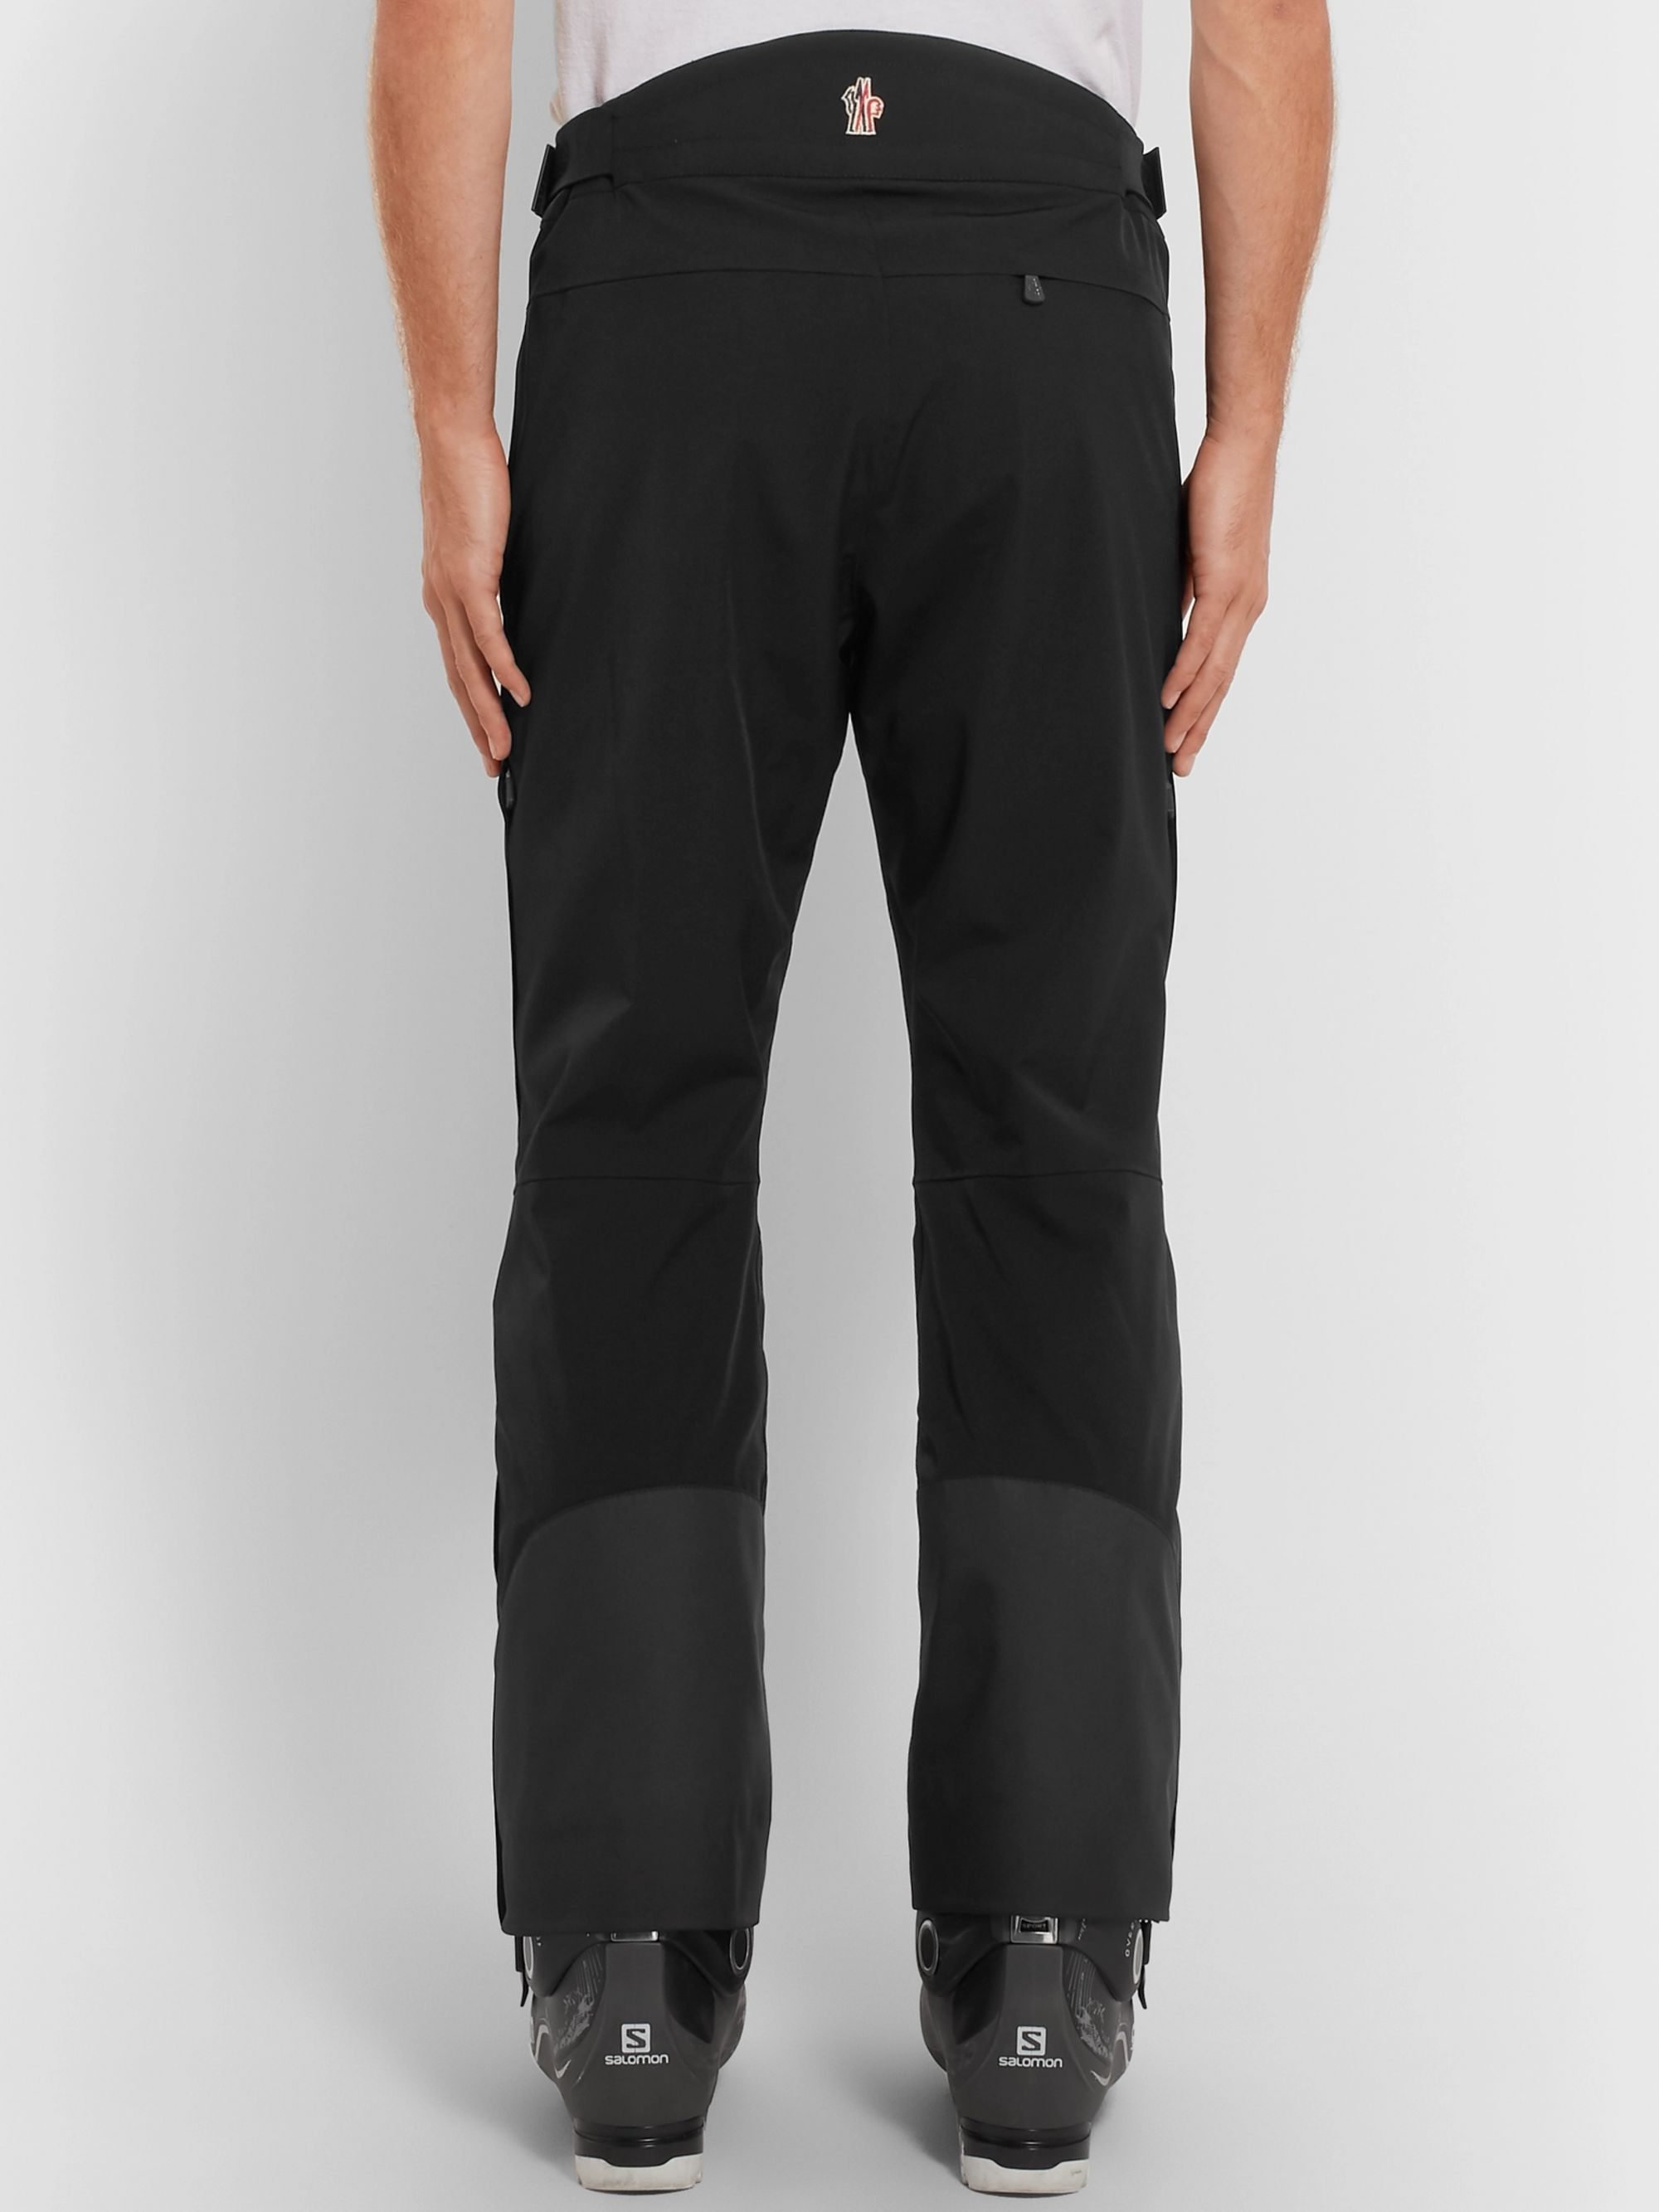 Moncler Grenoble Stretch Ski Trousers